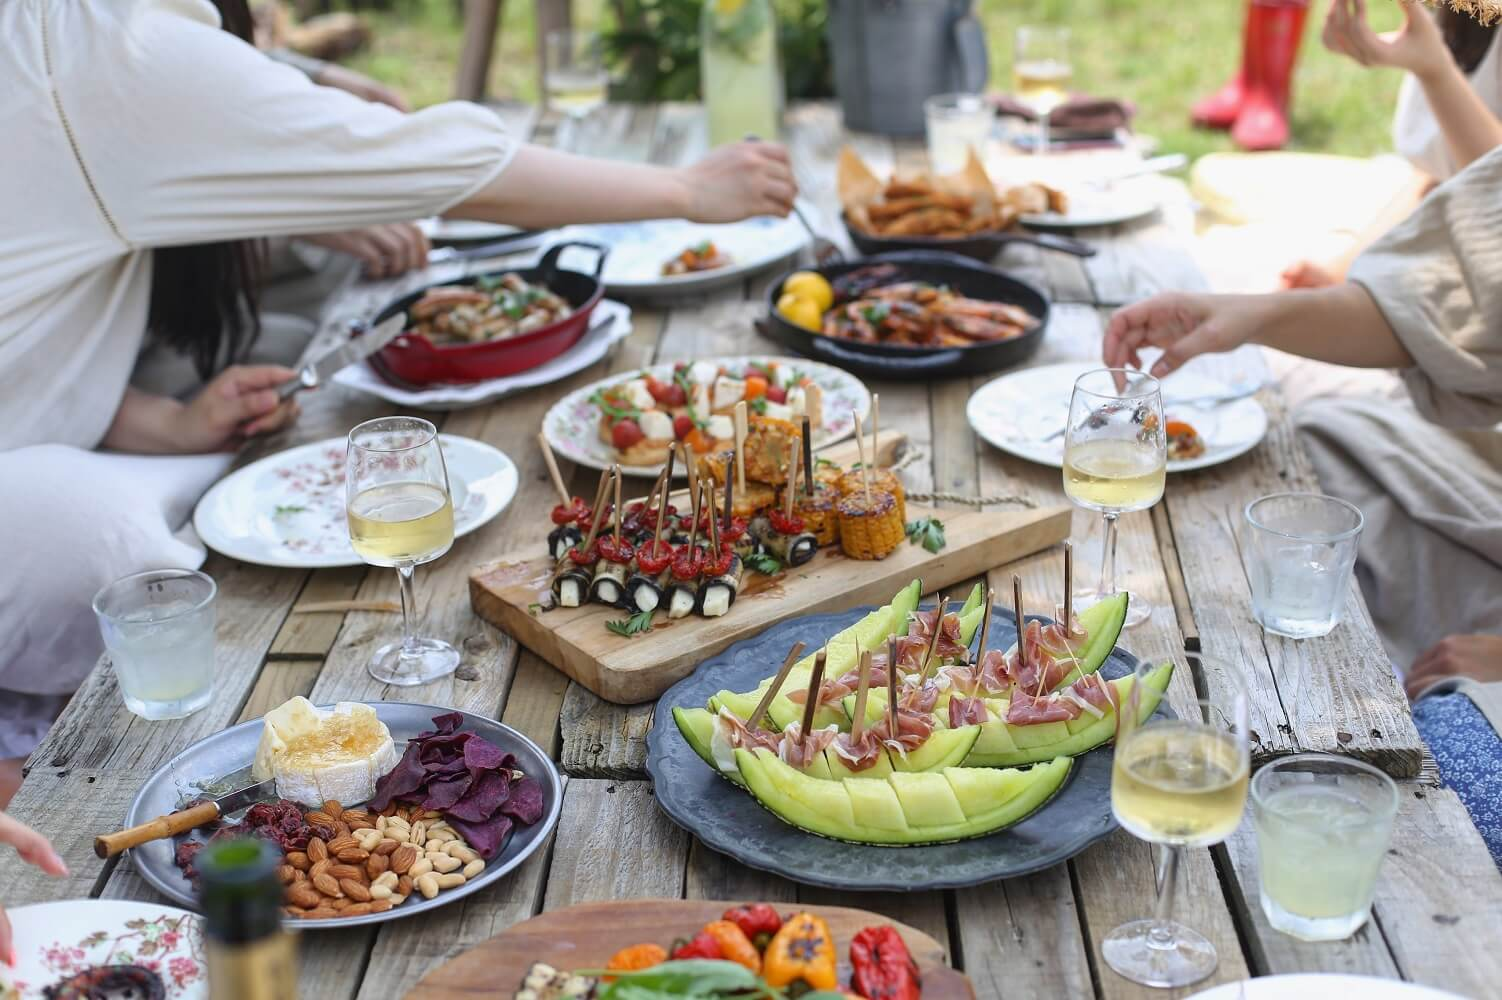 What are the food spots of Hunter Valley?